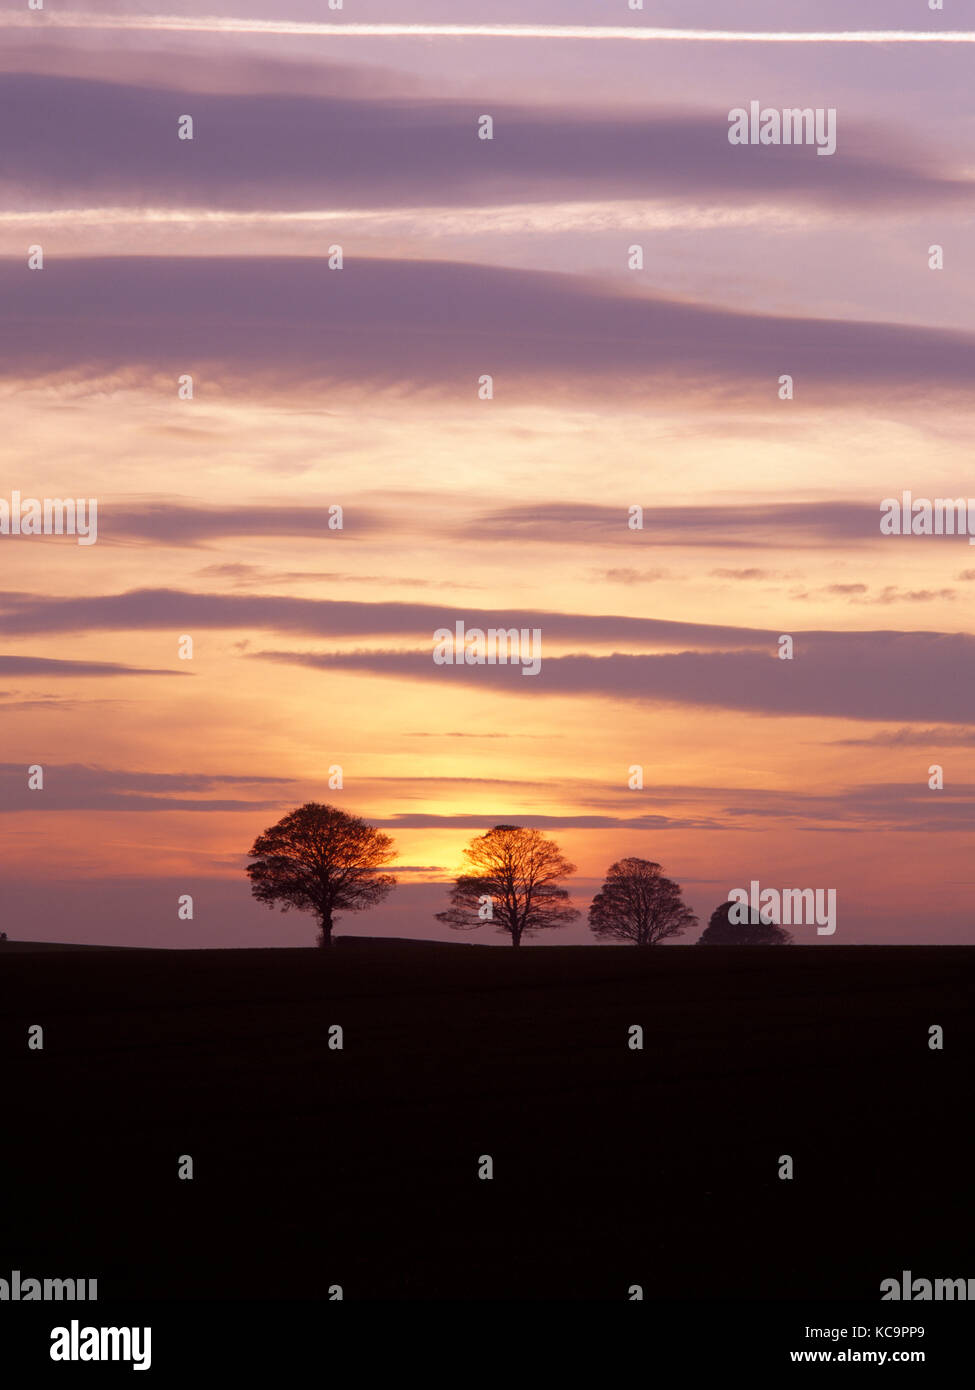 Ampleforth, North Yorkshire, England. Bare trees and bands of altocumulus clouds backlit at sunset. - Stock Image